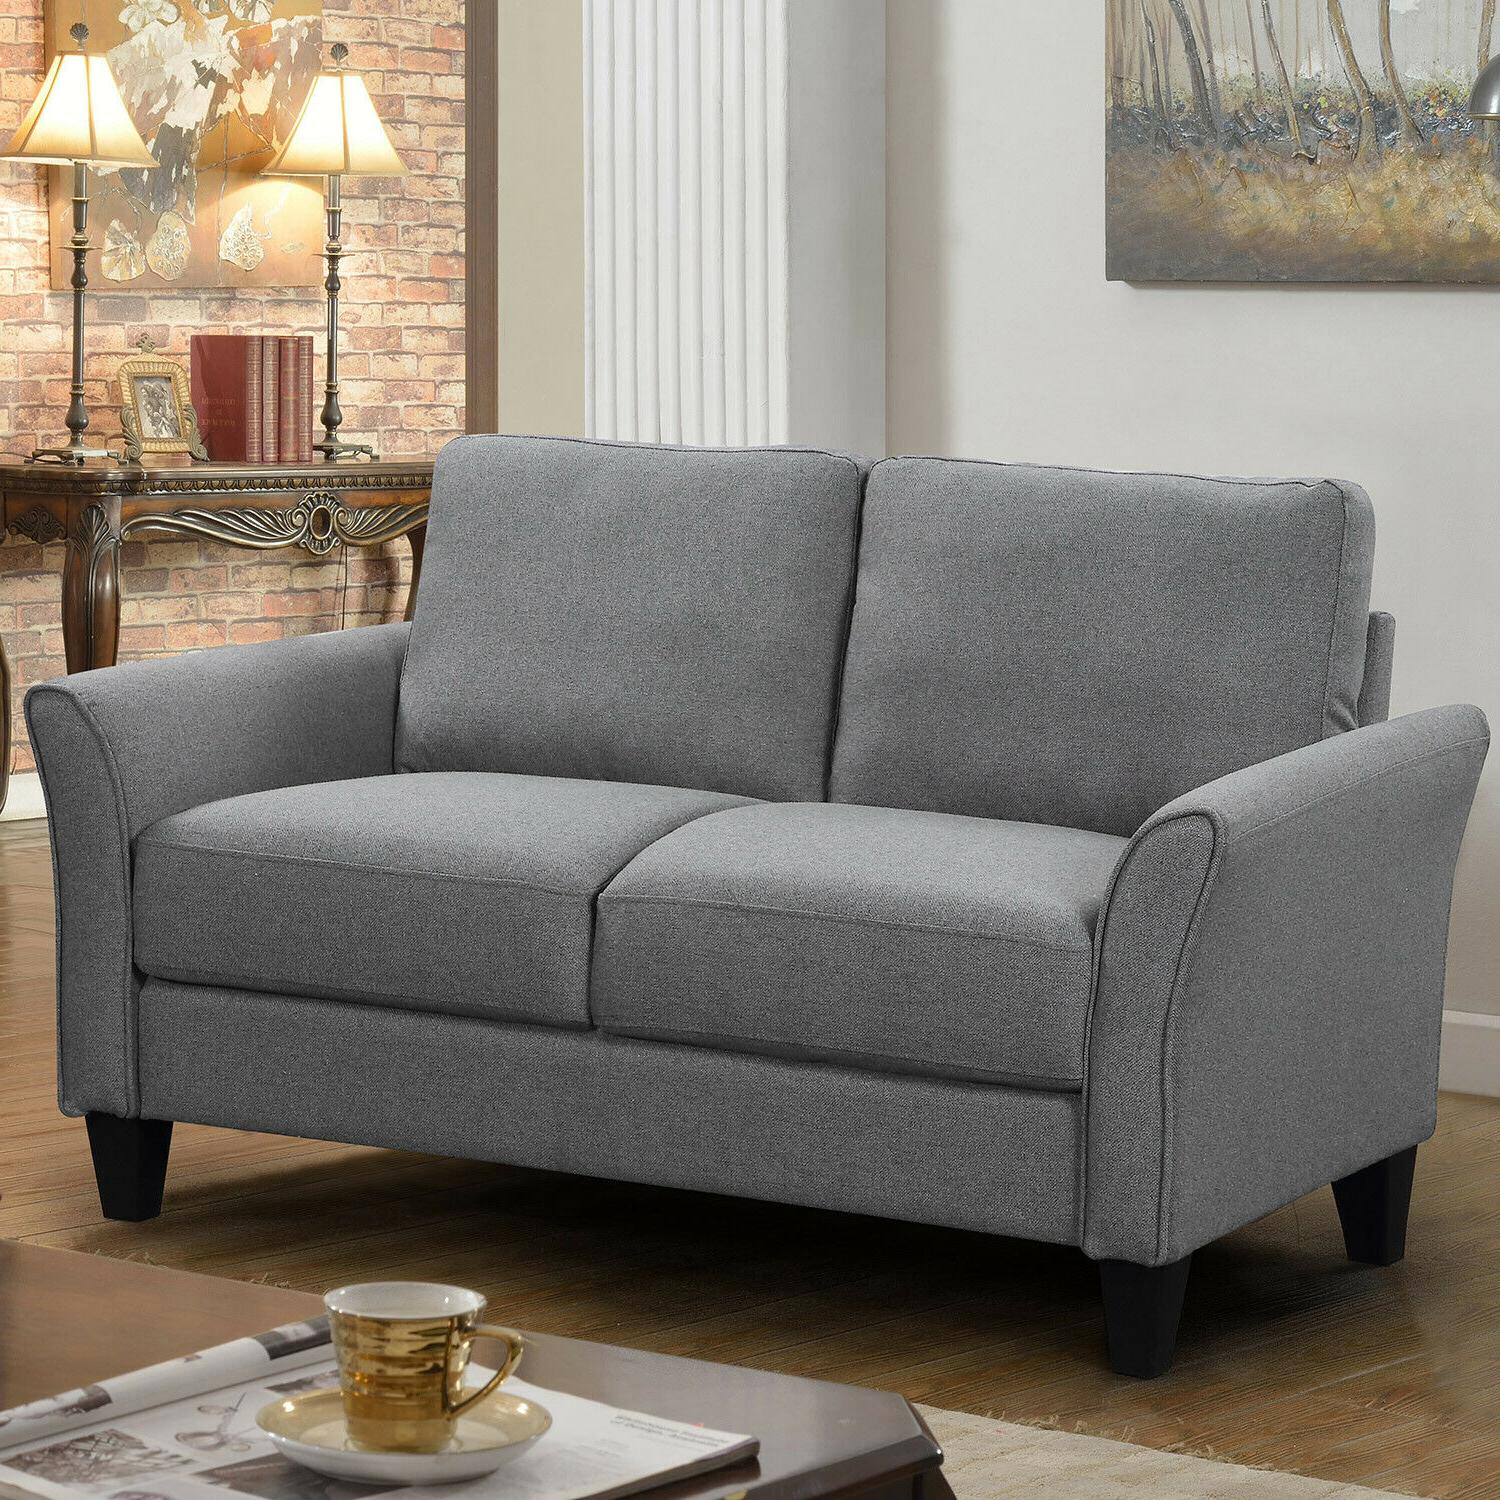 Sofa Recliner Chair Sectional Living Room